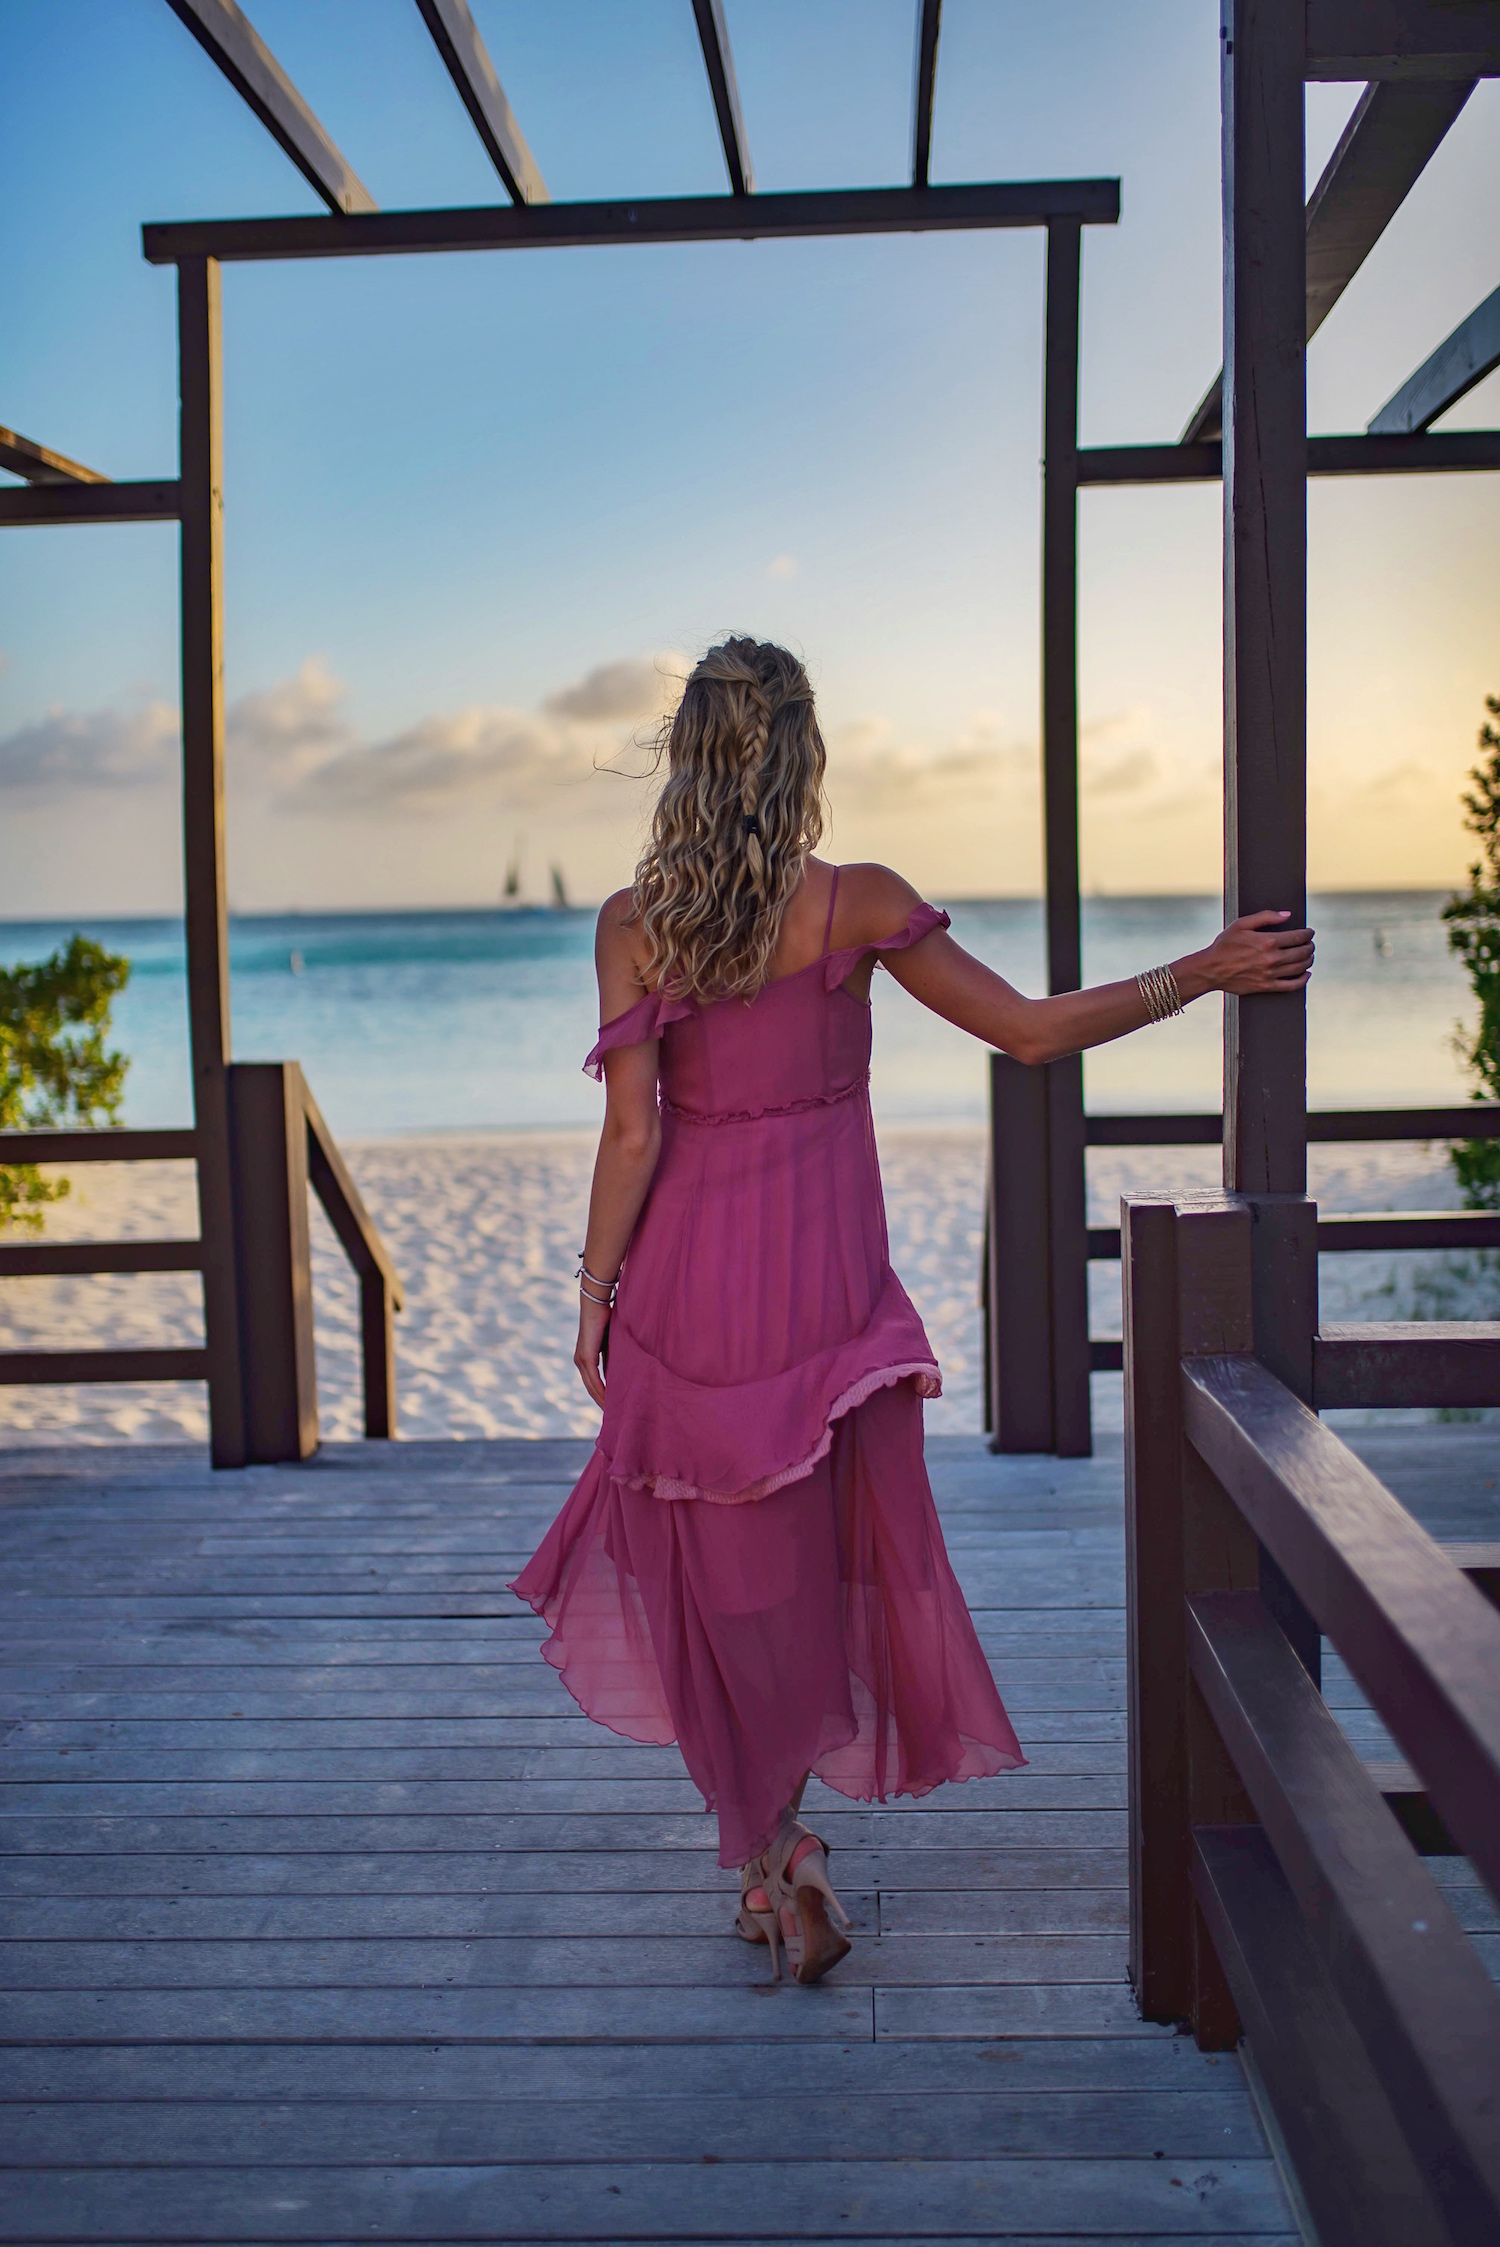 Tips For Overcoming Travel Anxiety